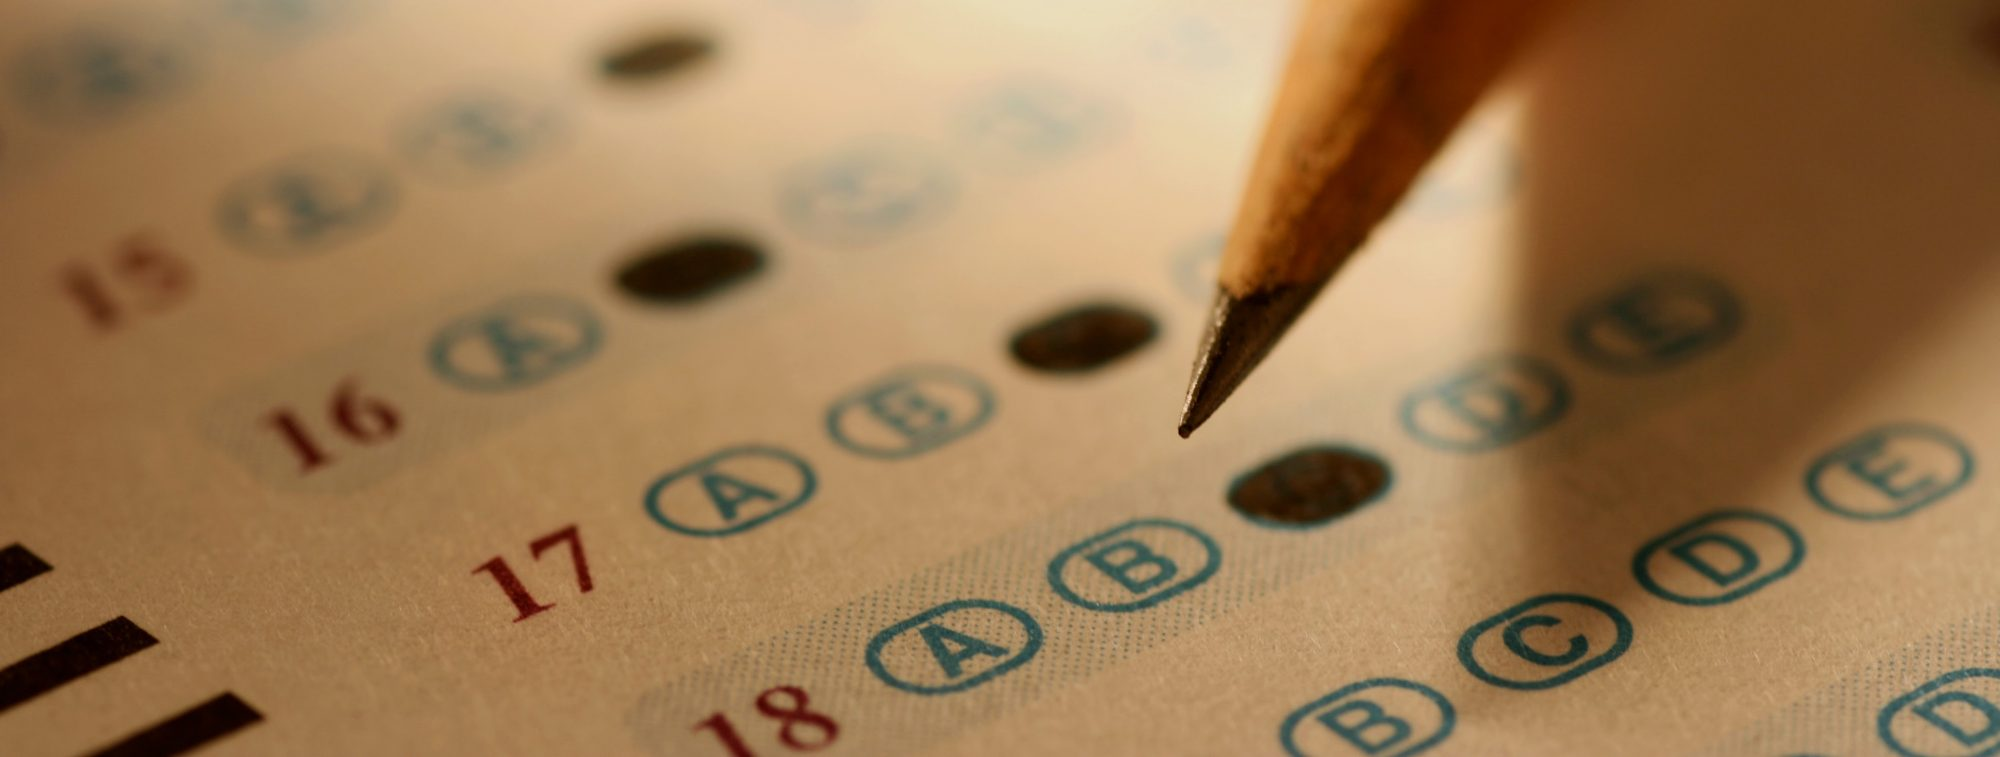 Online Test Bank for your Exam Download